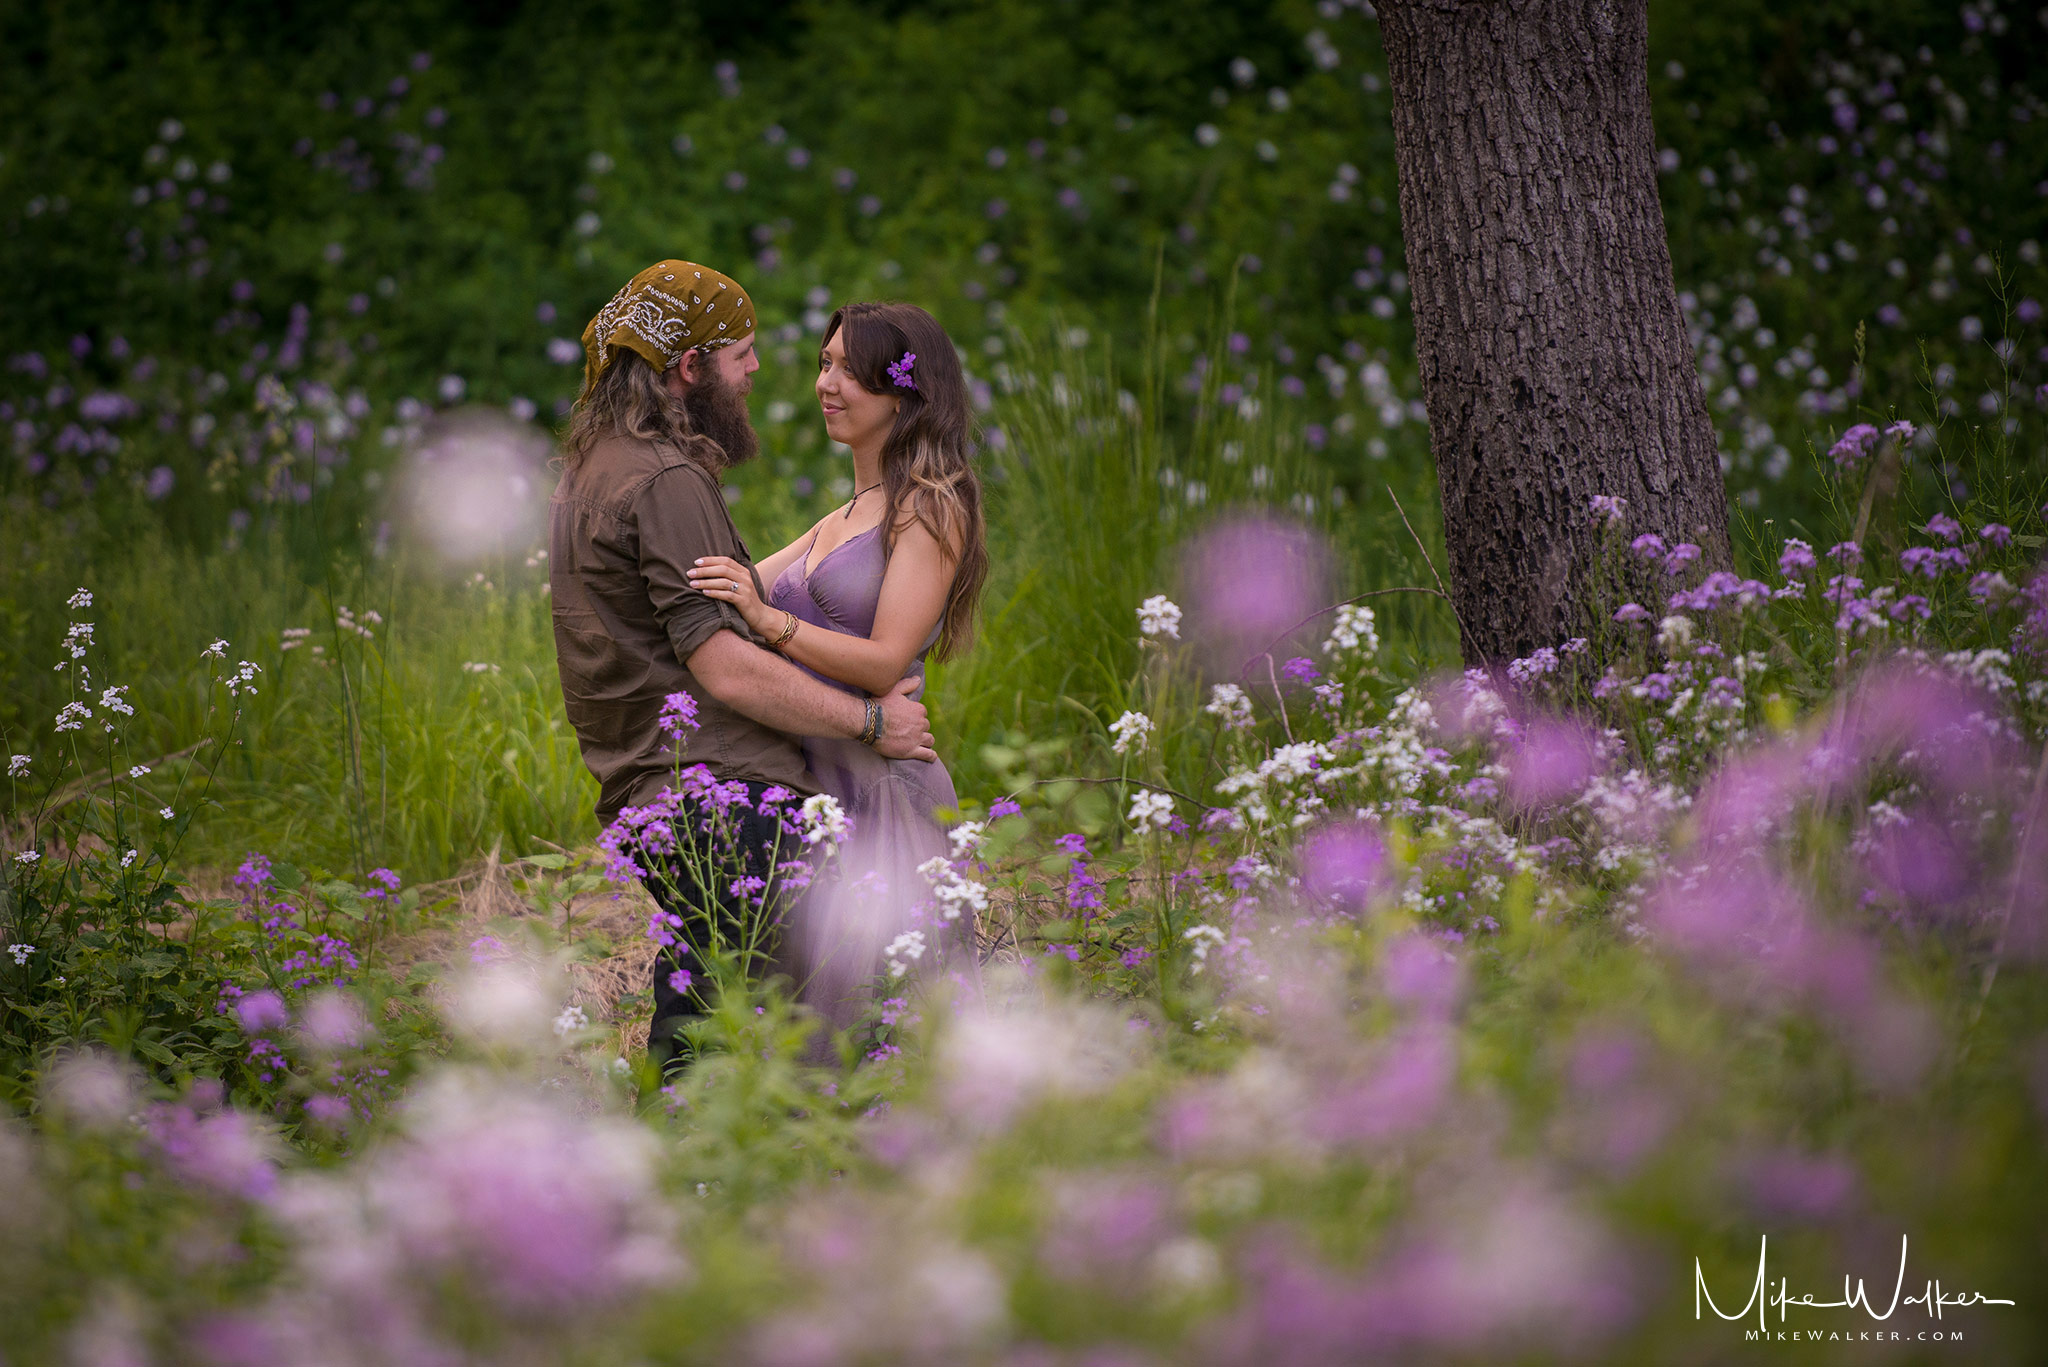 Engaged couple in field of wildflowers. Engagement photography by Mike Walker.